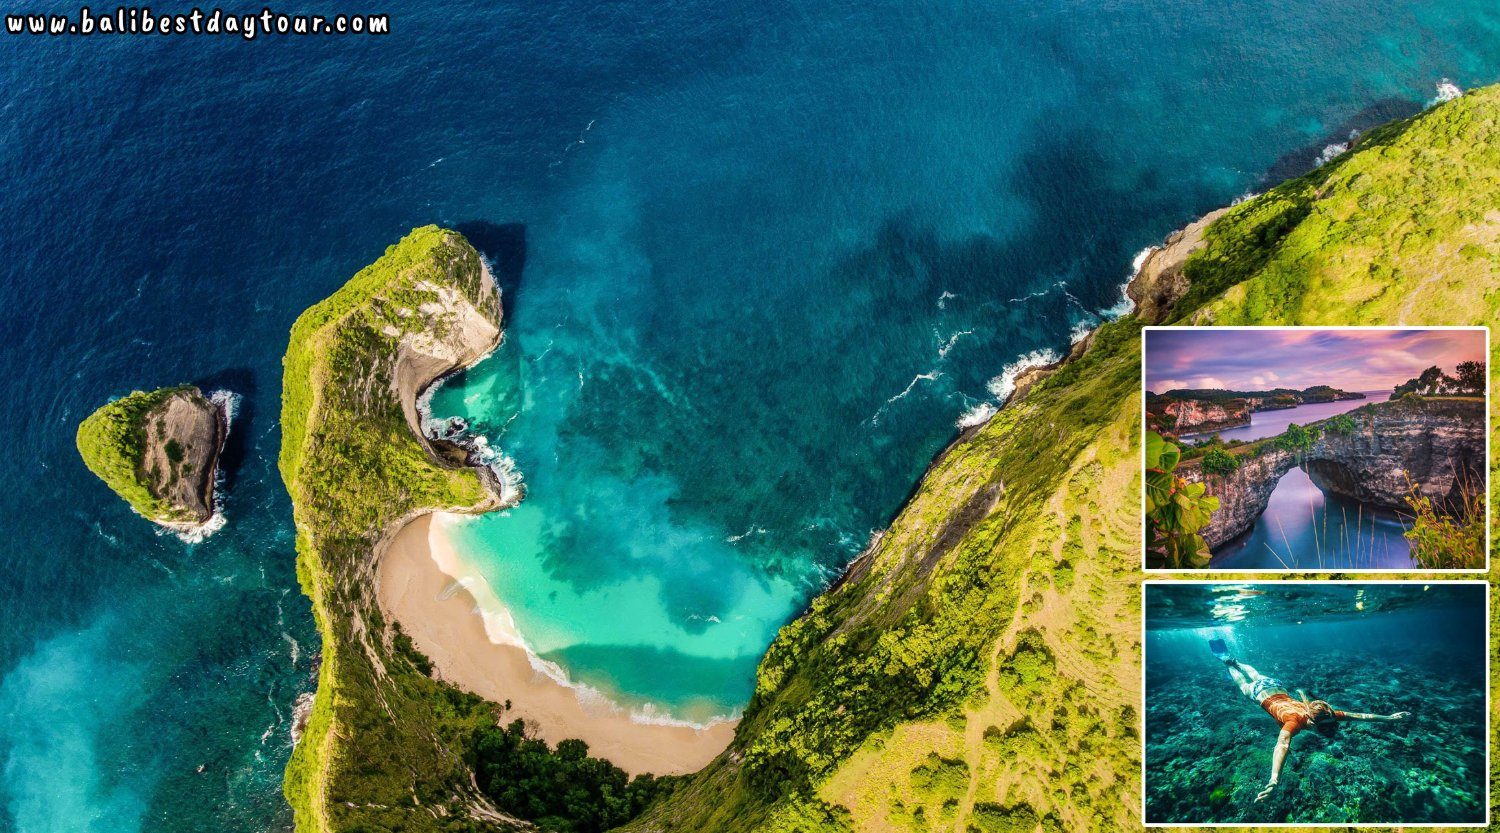 Bali Nusa Penida Tour Packages: 3 Amazing Beaches + Snorkeling Point